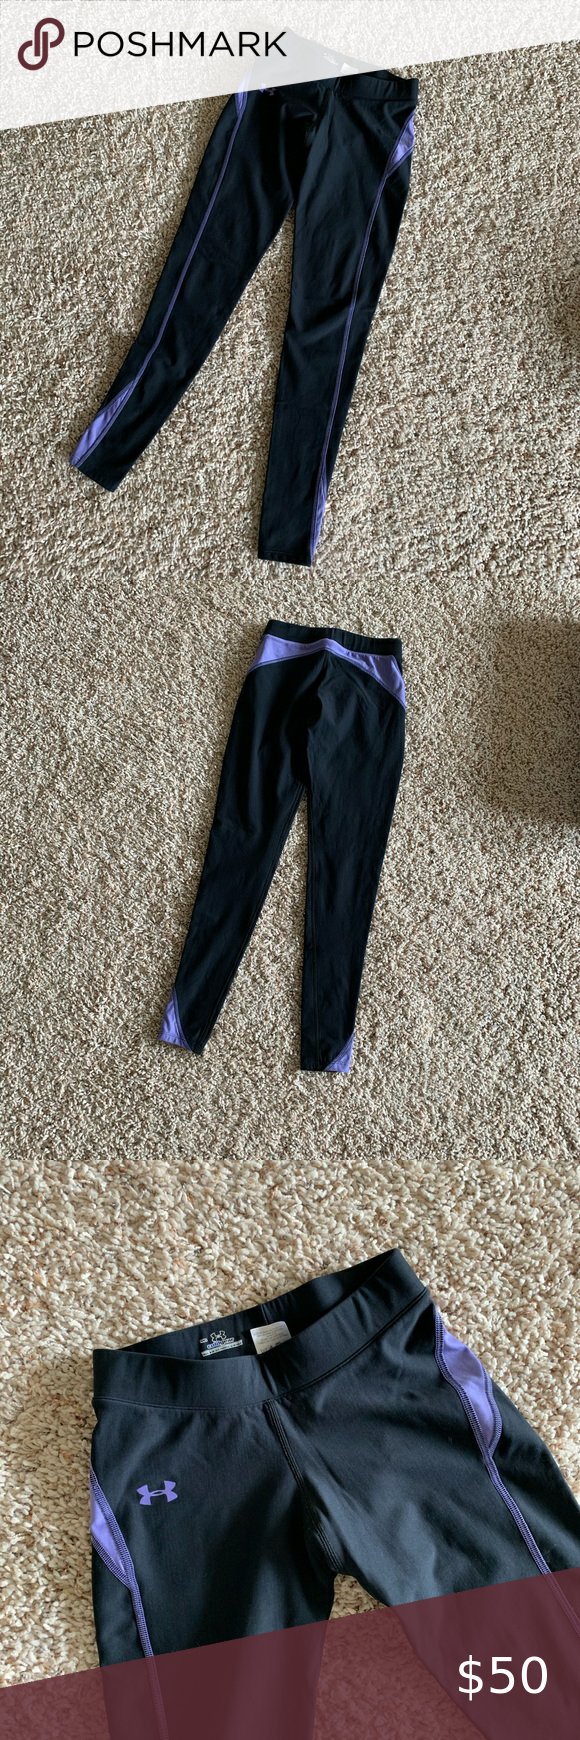 Photo of Under Armour Black Cold Gear Pant Leggings Size M Moved to Texas and selling the…